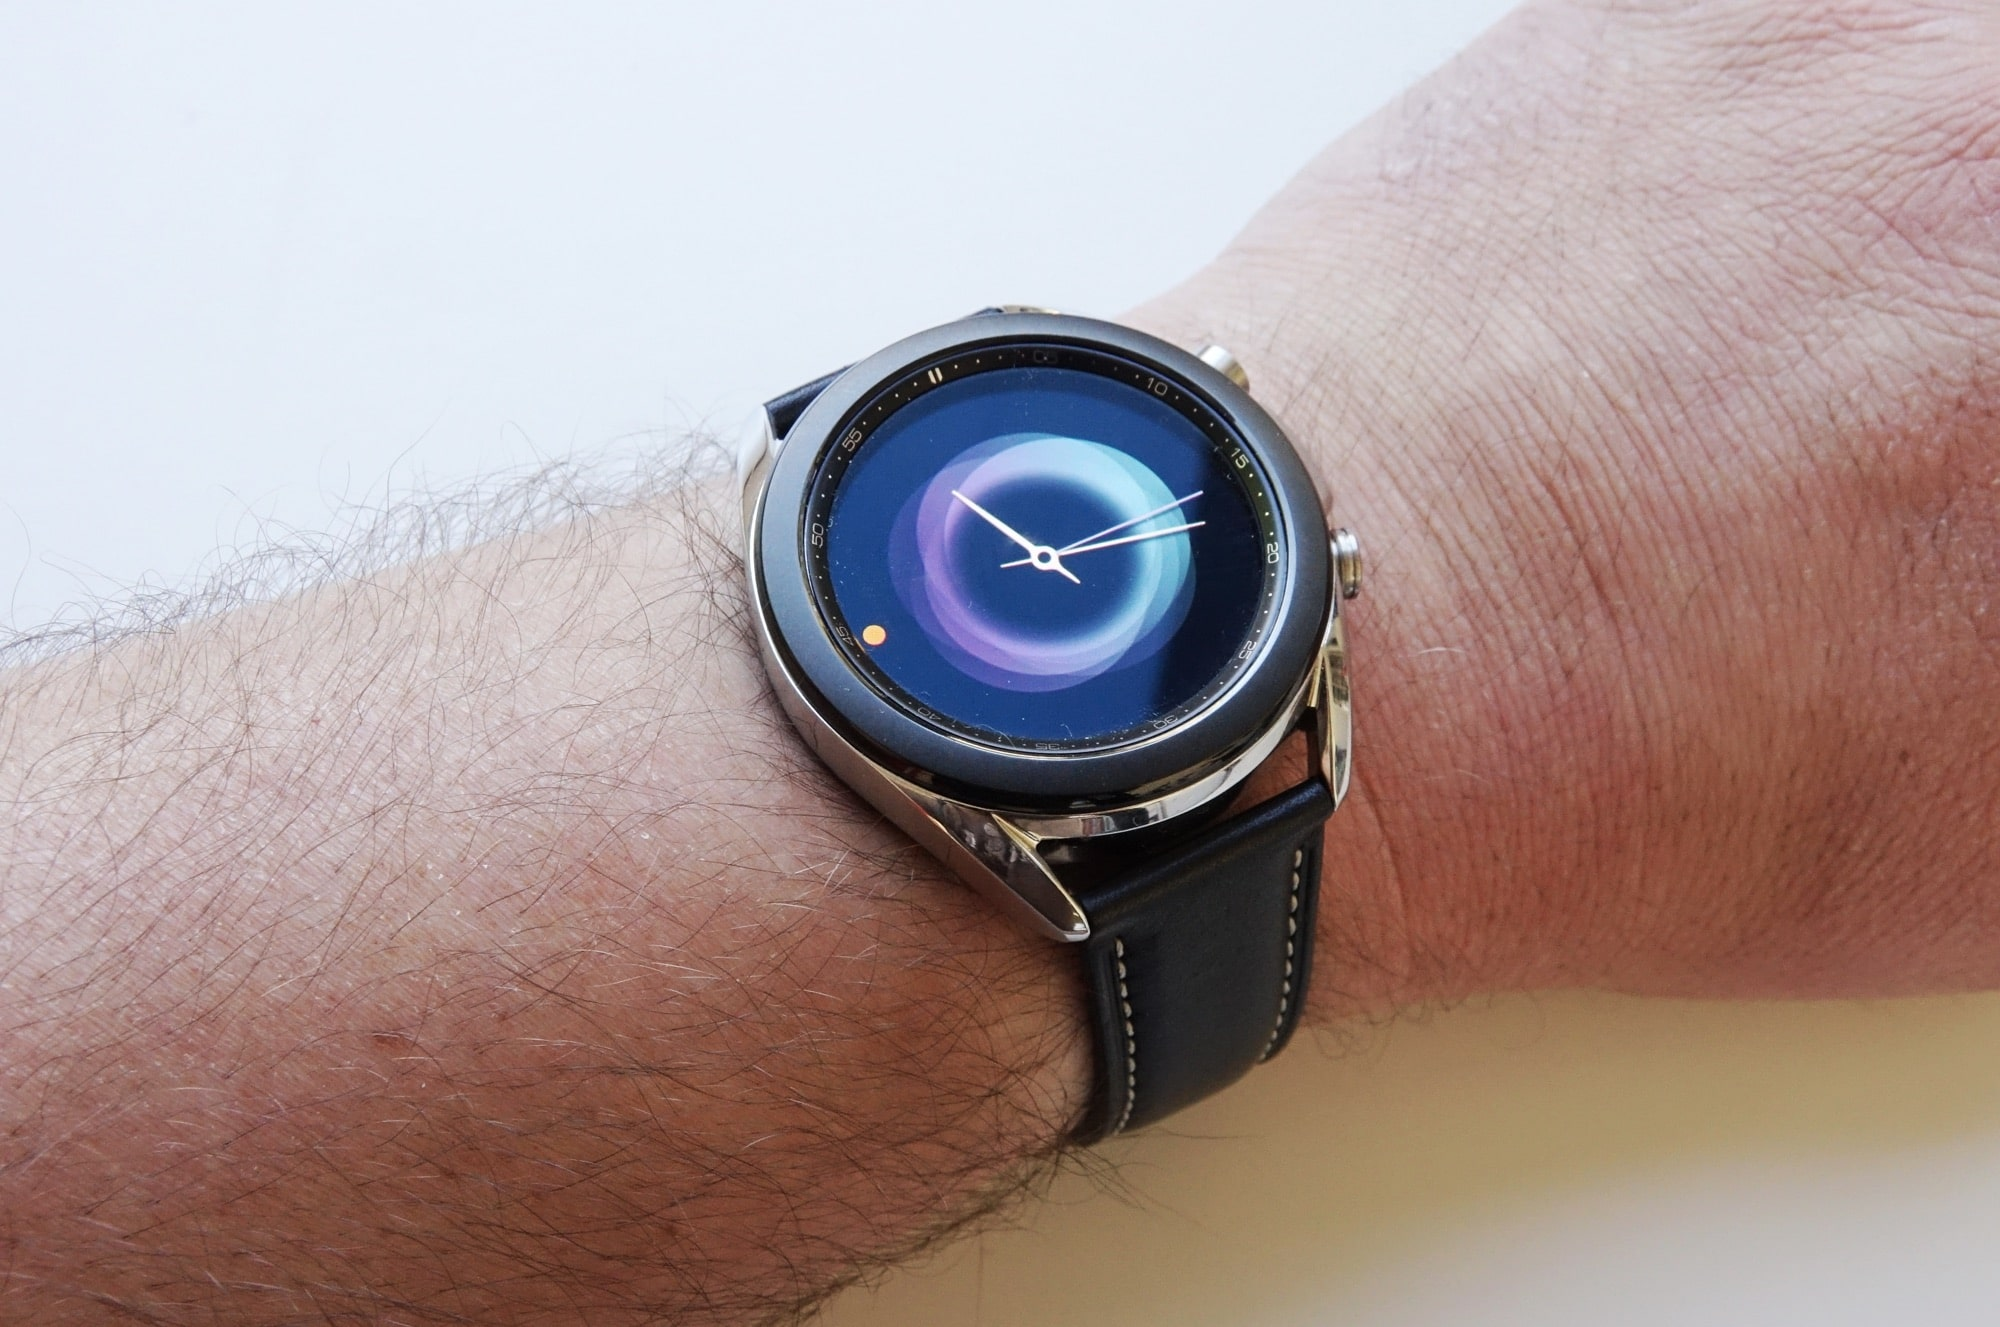 One of the watch faces on the Galaxy Watch 3